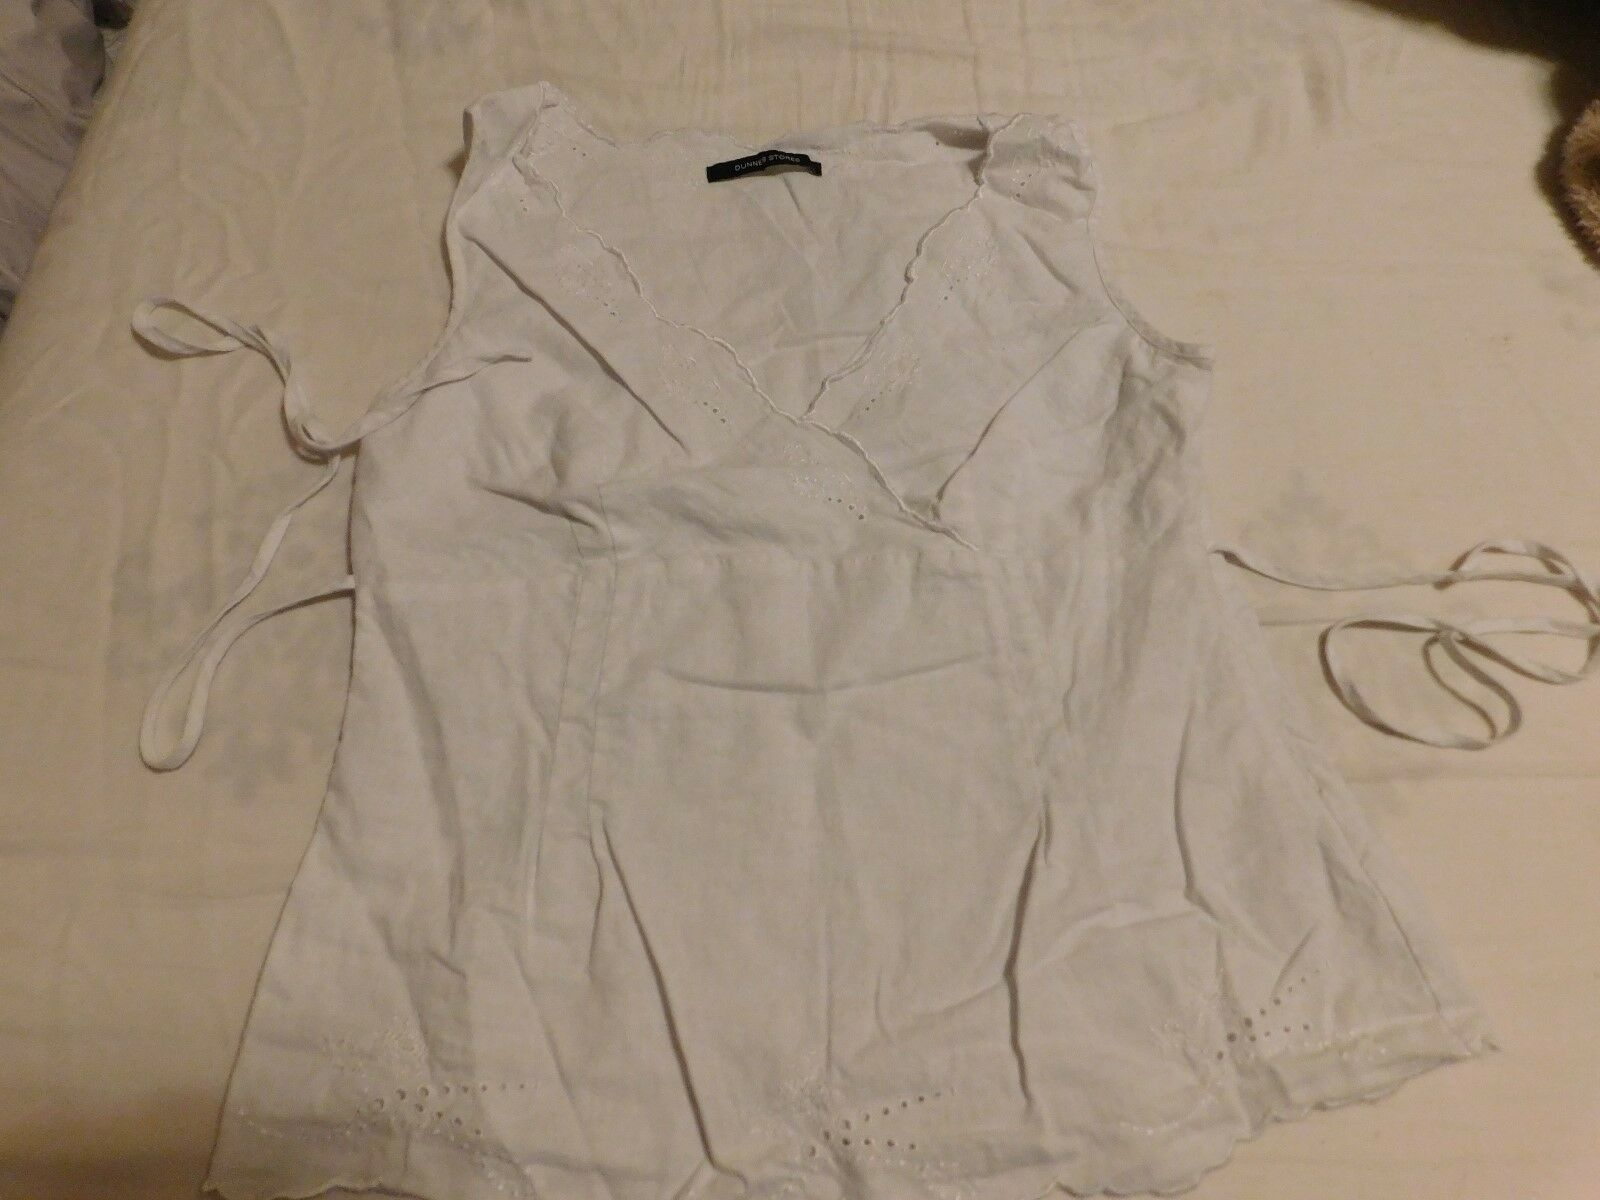 DUNNES STORES WHITE LINEN TOP SIZE UK 12 - image 5